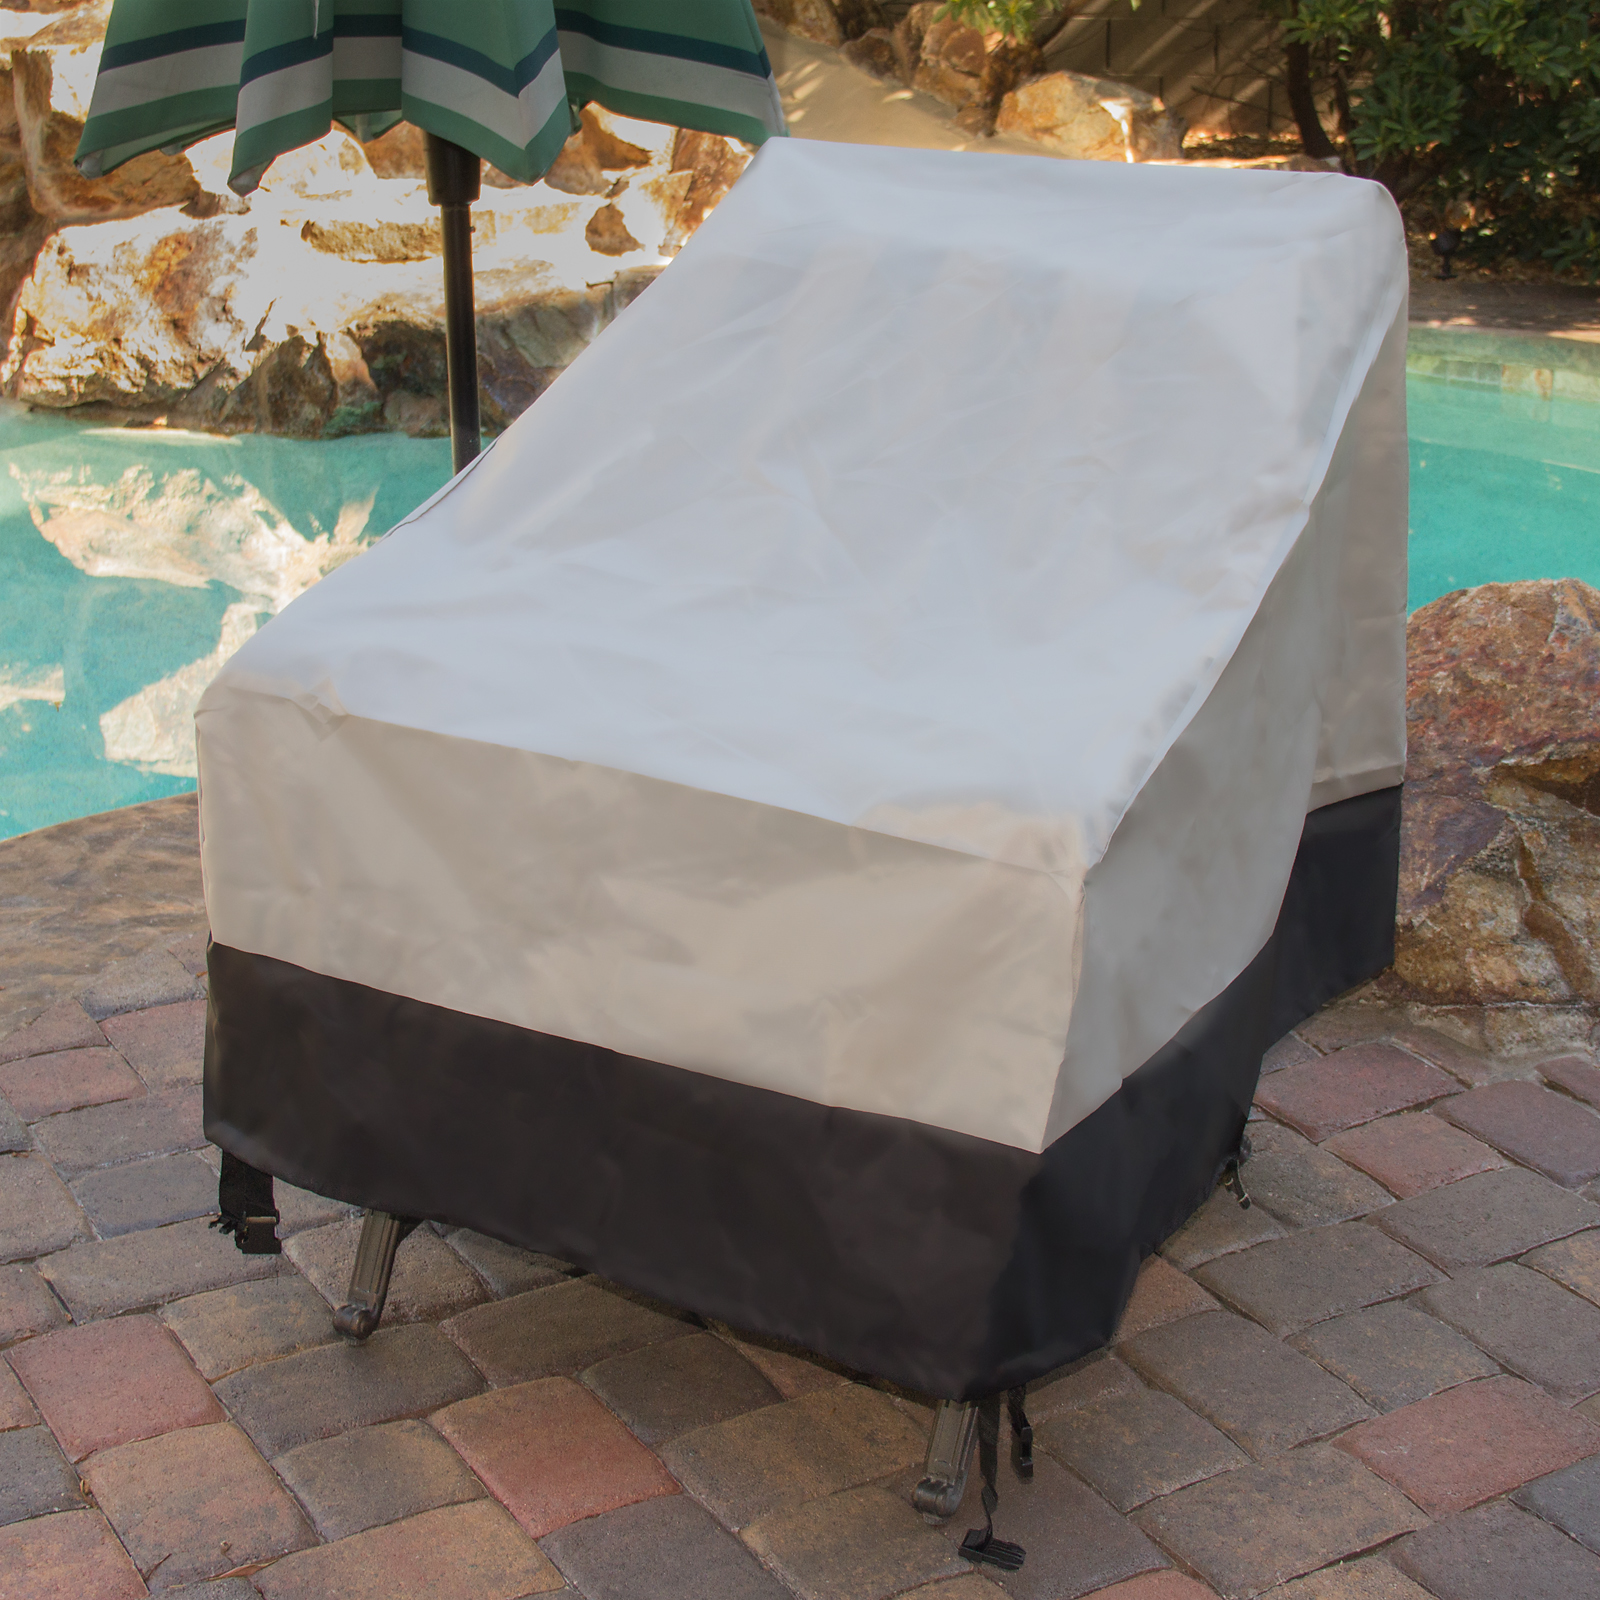 garden chair covers wilko rustic desk no wheels 2 pack deep seat outdoor furniture patio cover ebay